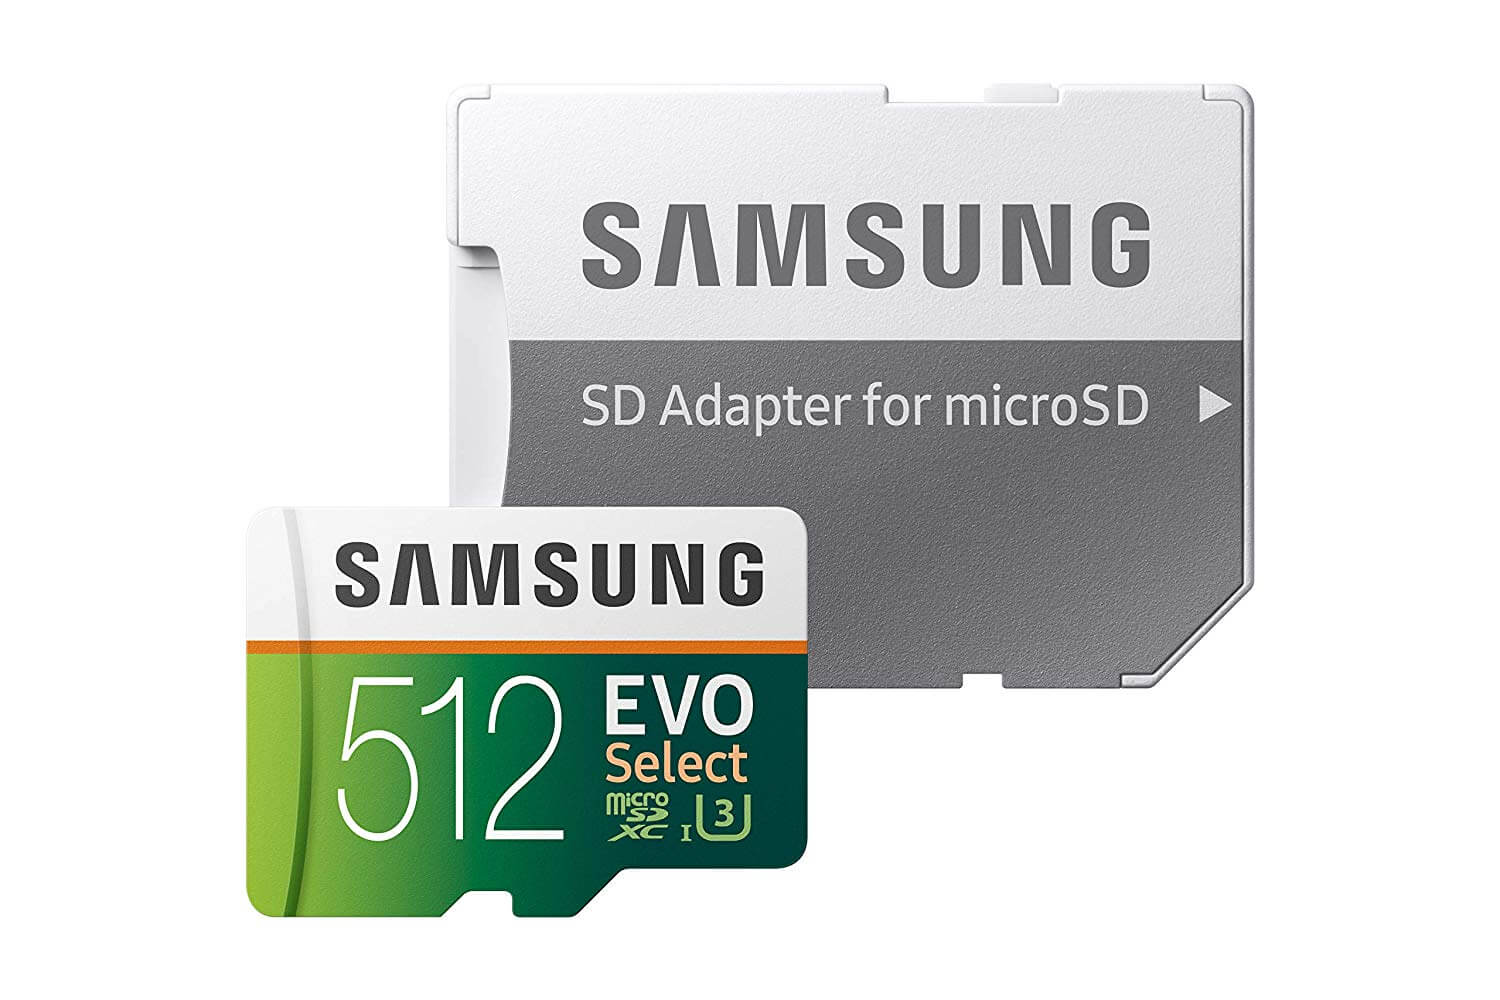 Best SD Cards for Samsung Galaxy S10 - Samsung MicroSDXC EVO Select with Adapter